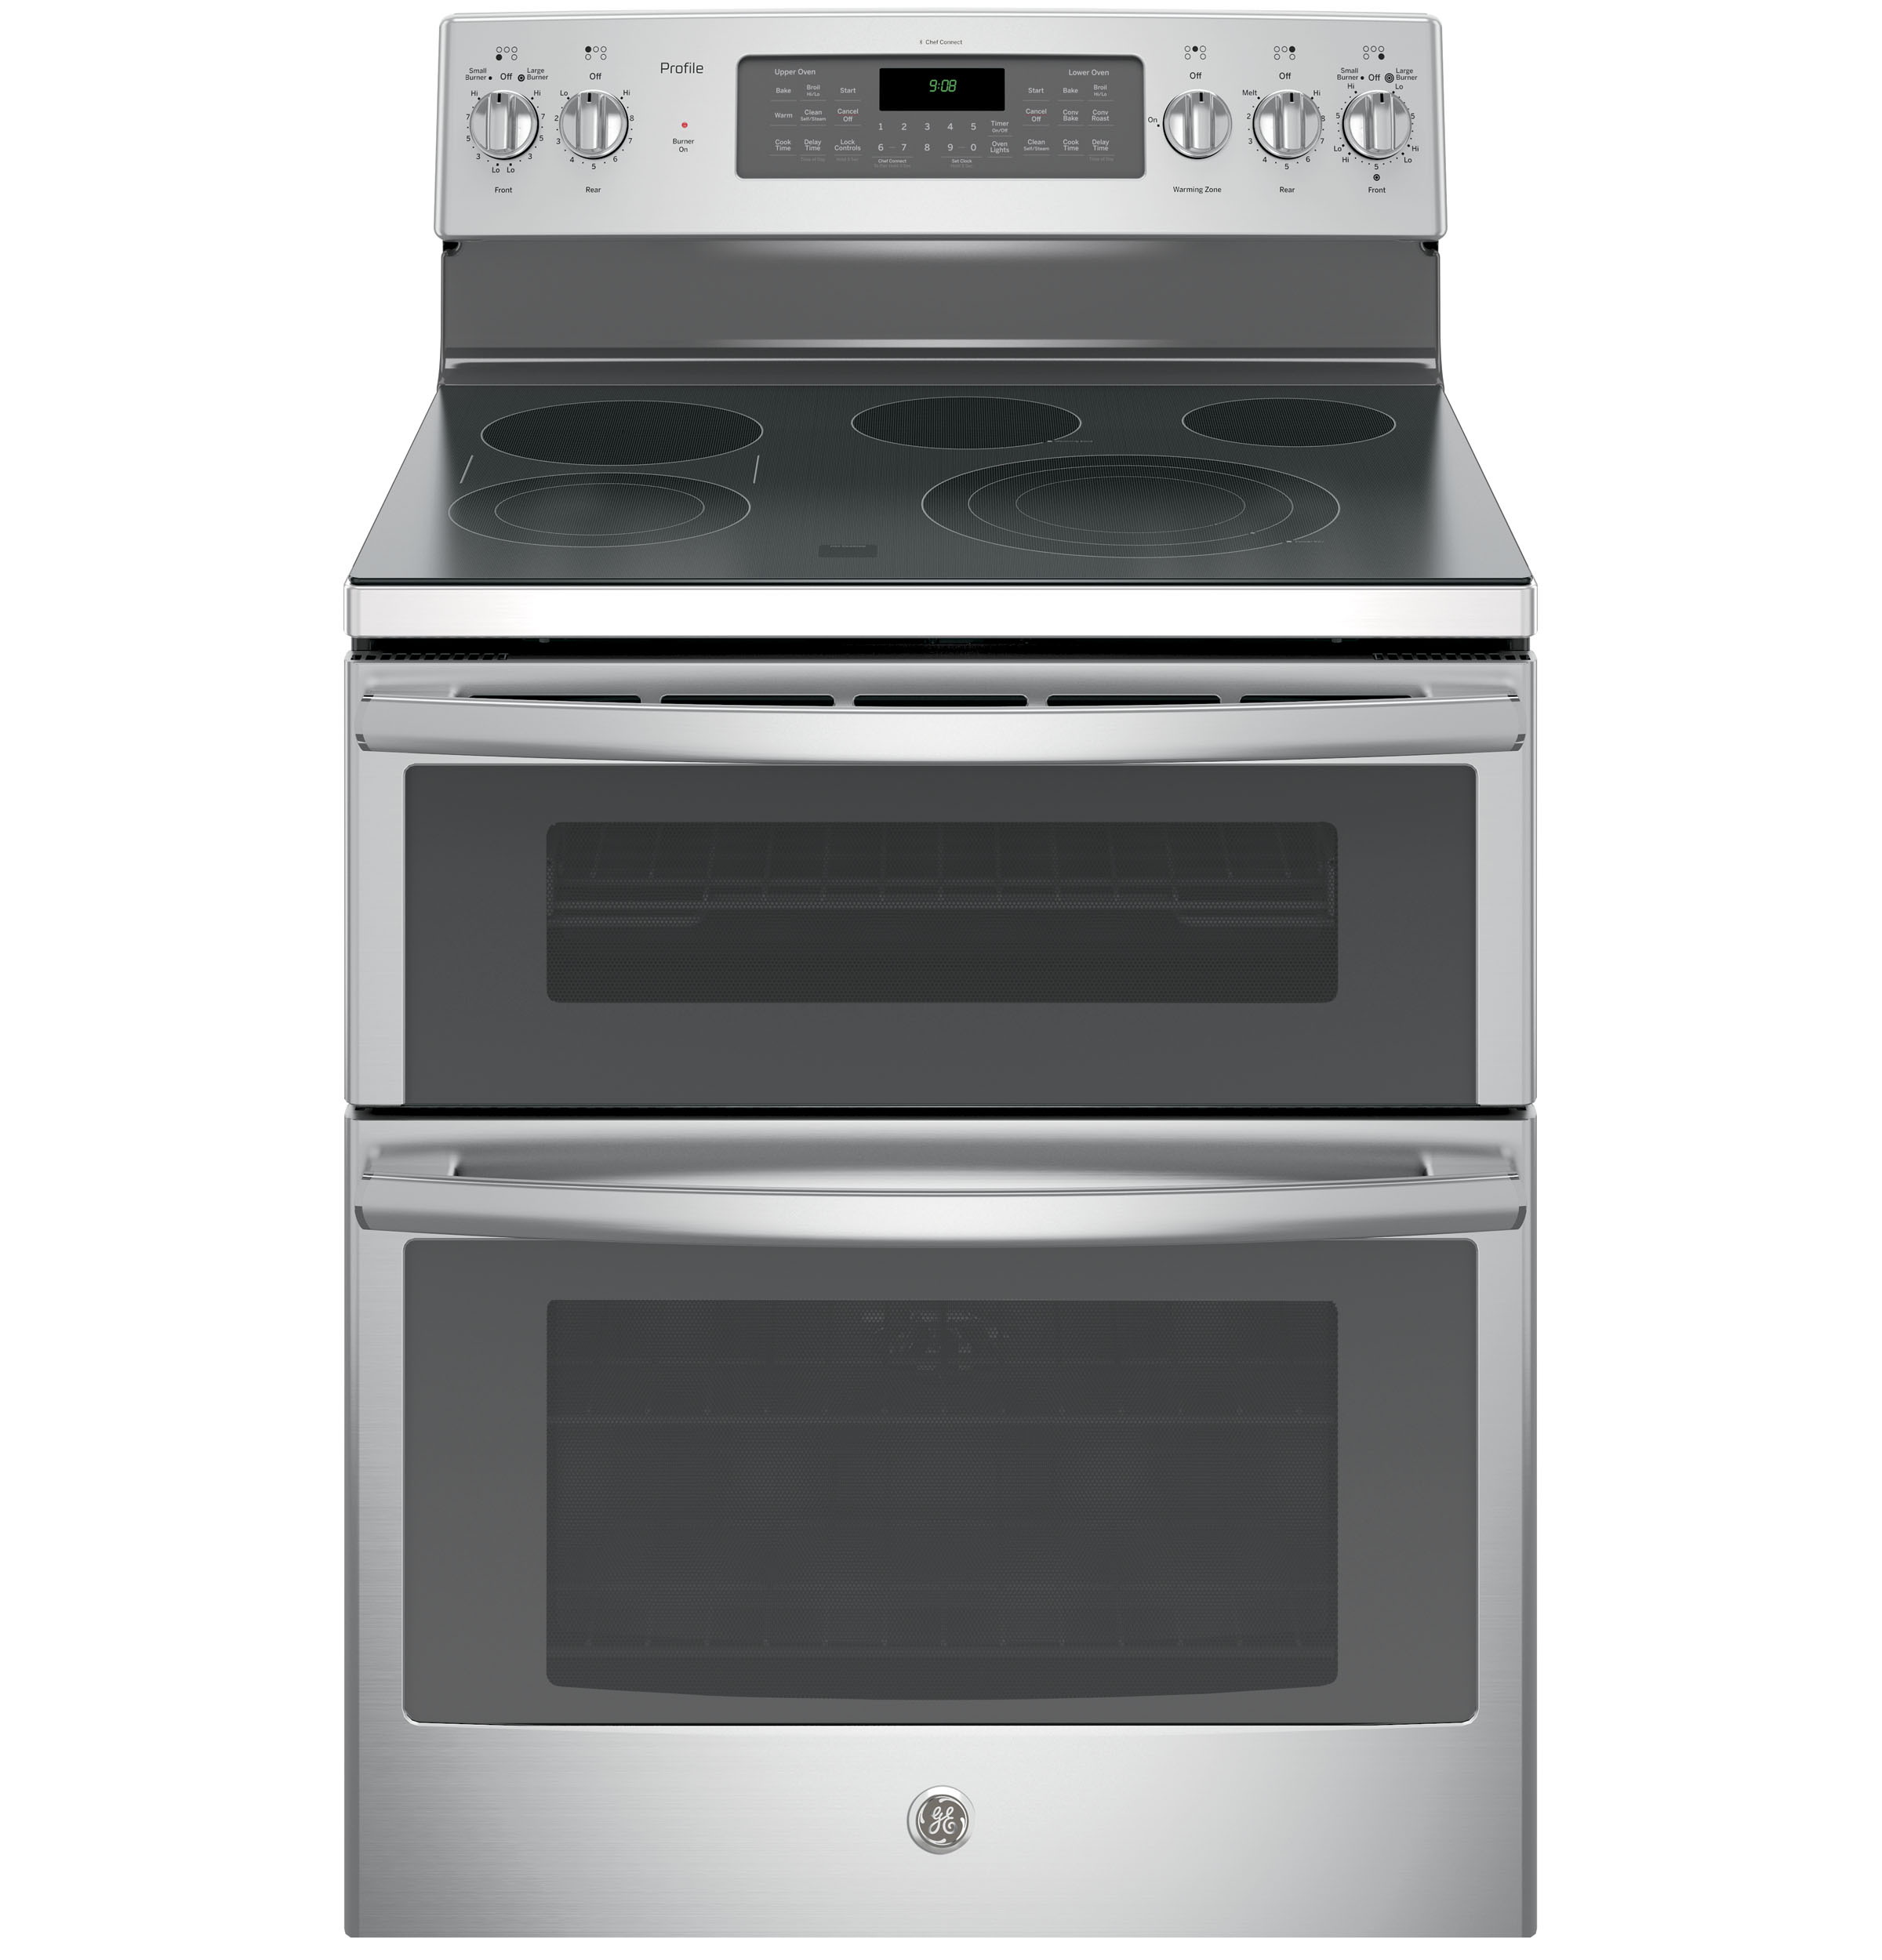 "GE Profile GE Profile™ Series 30"" Free-Standing Double Oven Convection Range"